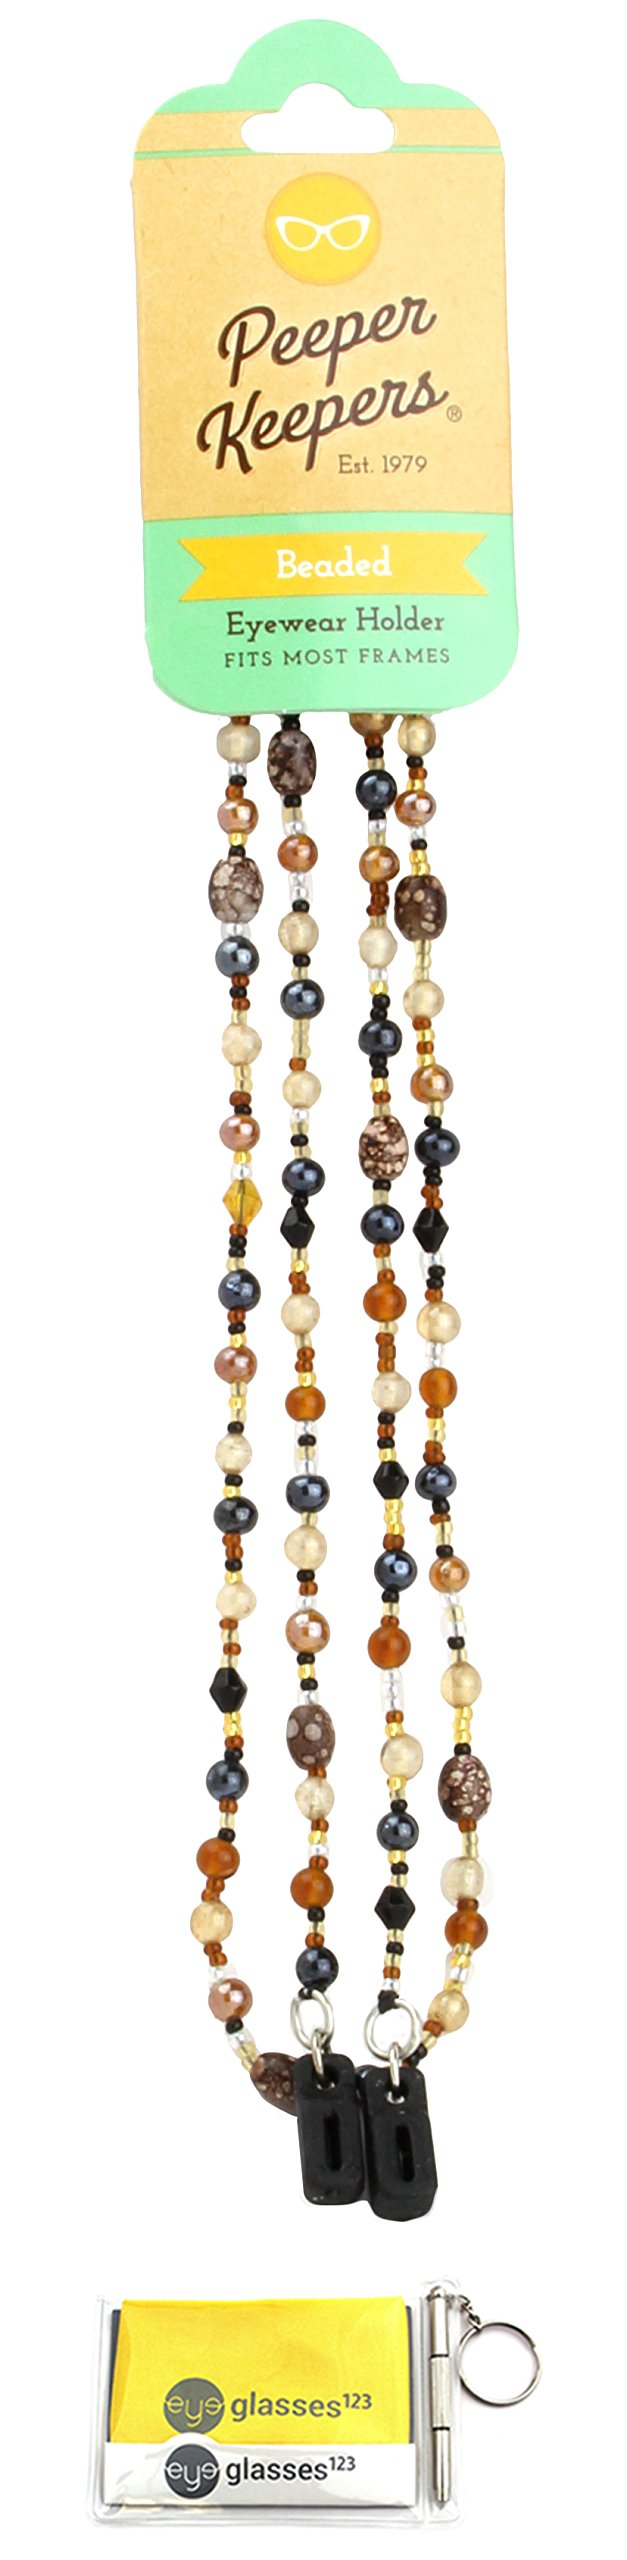 Eyeglass Retainer & Sunglass Holder By Peeper Keepers Glass Beads, Brown Marble, 1pk | w/Microfiber Cloth & Screwdriver